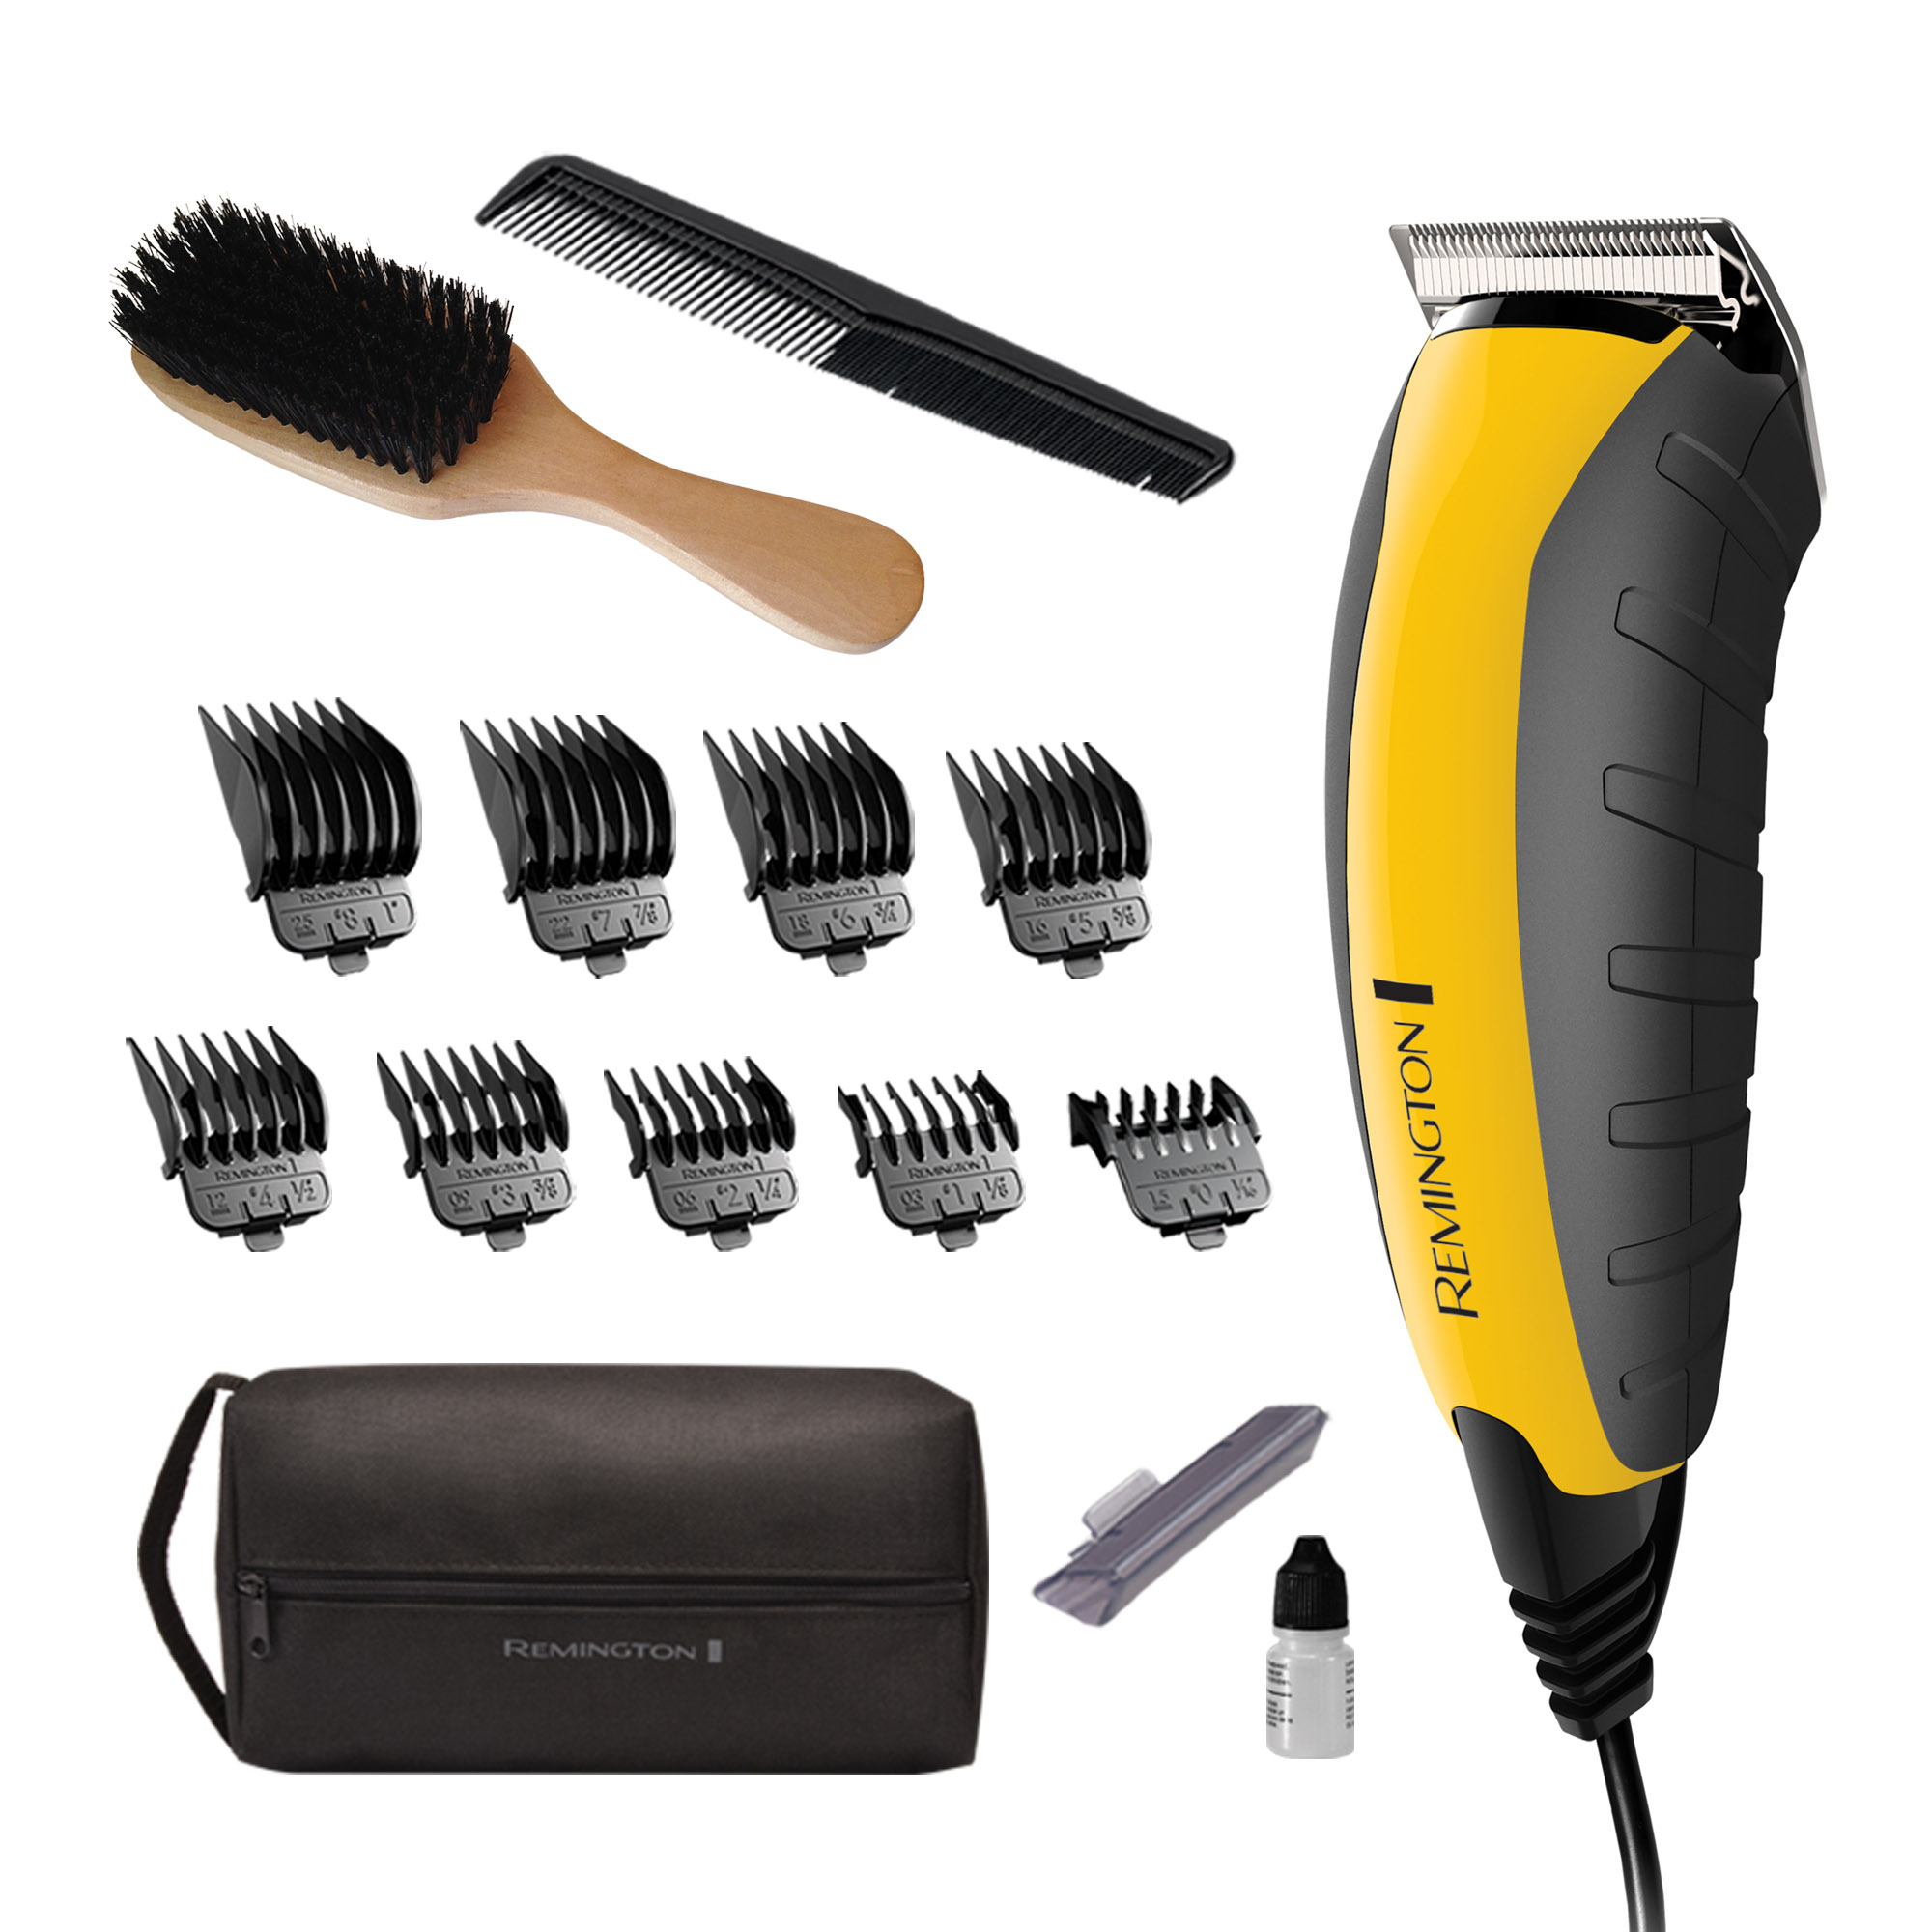 Remington Virtually Indestructible Barbershop Clipper 15 Piece